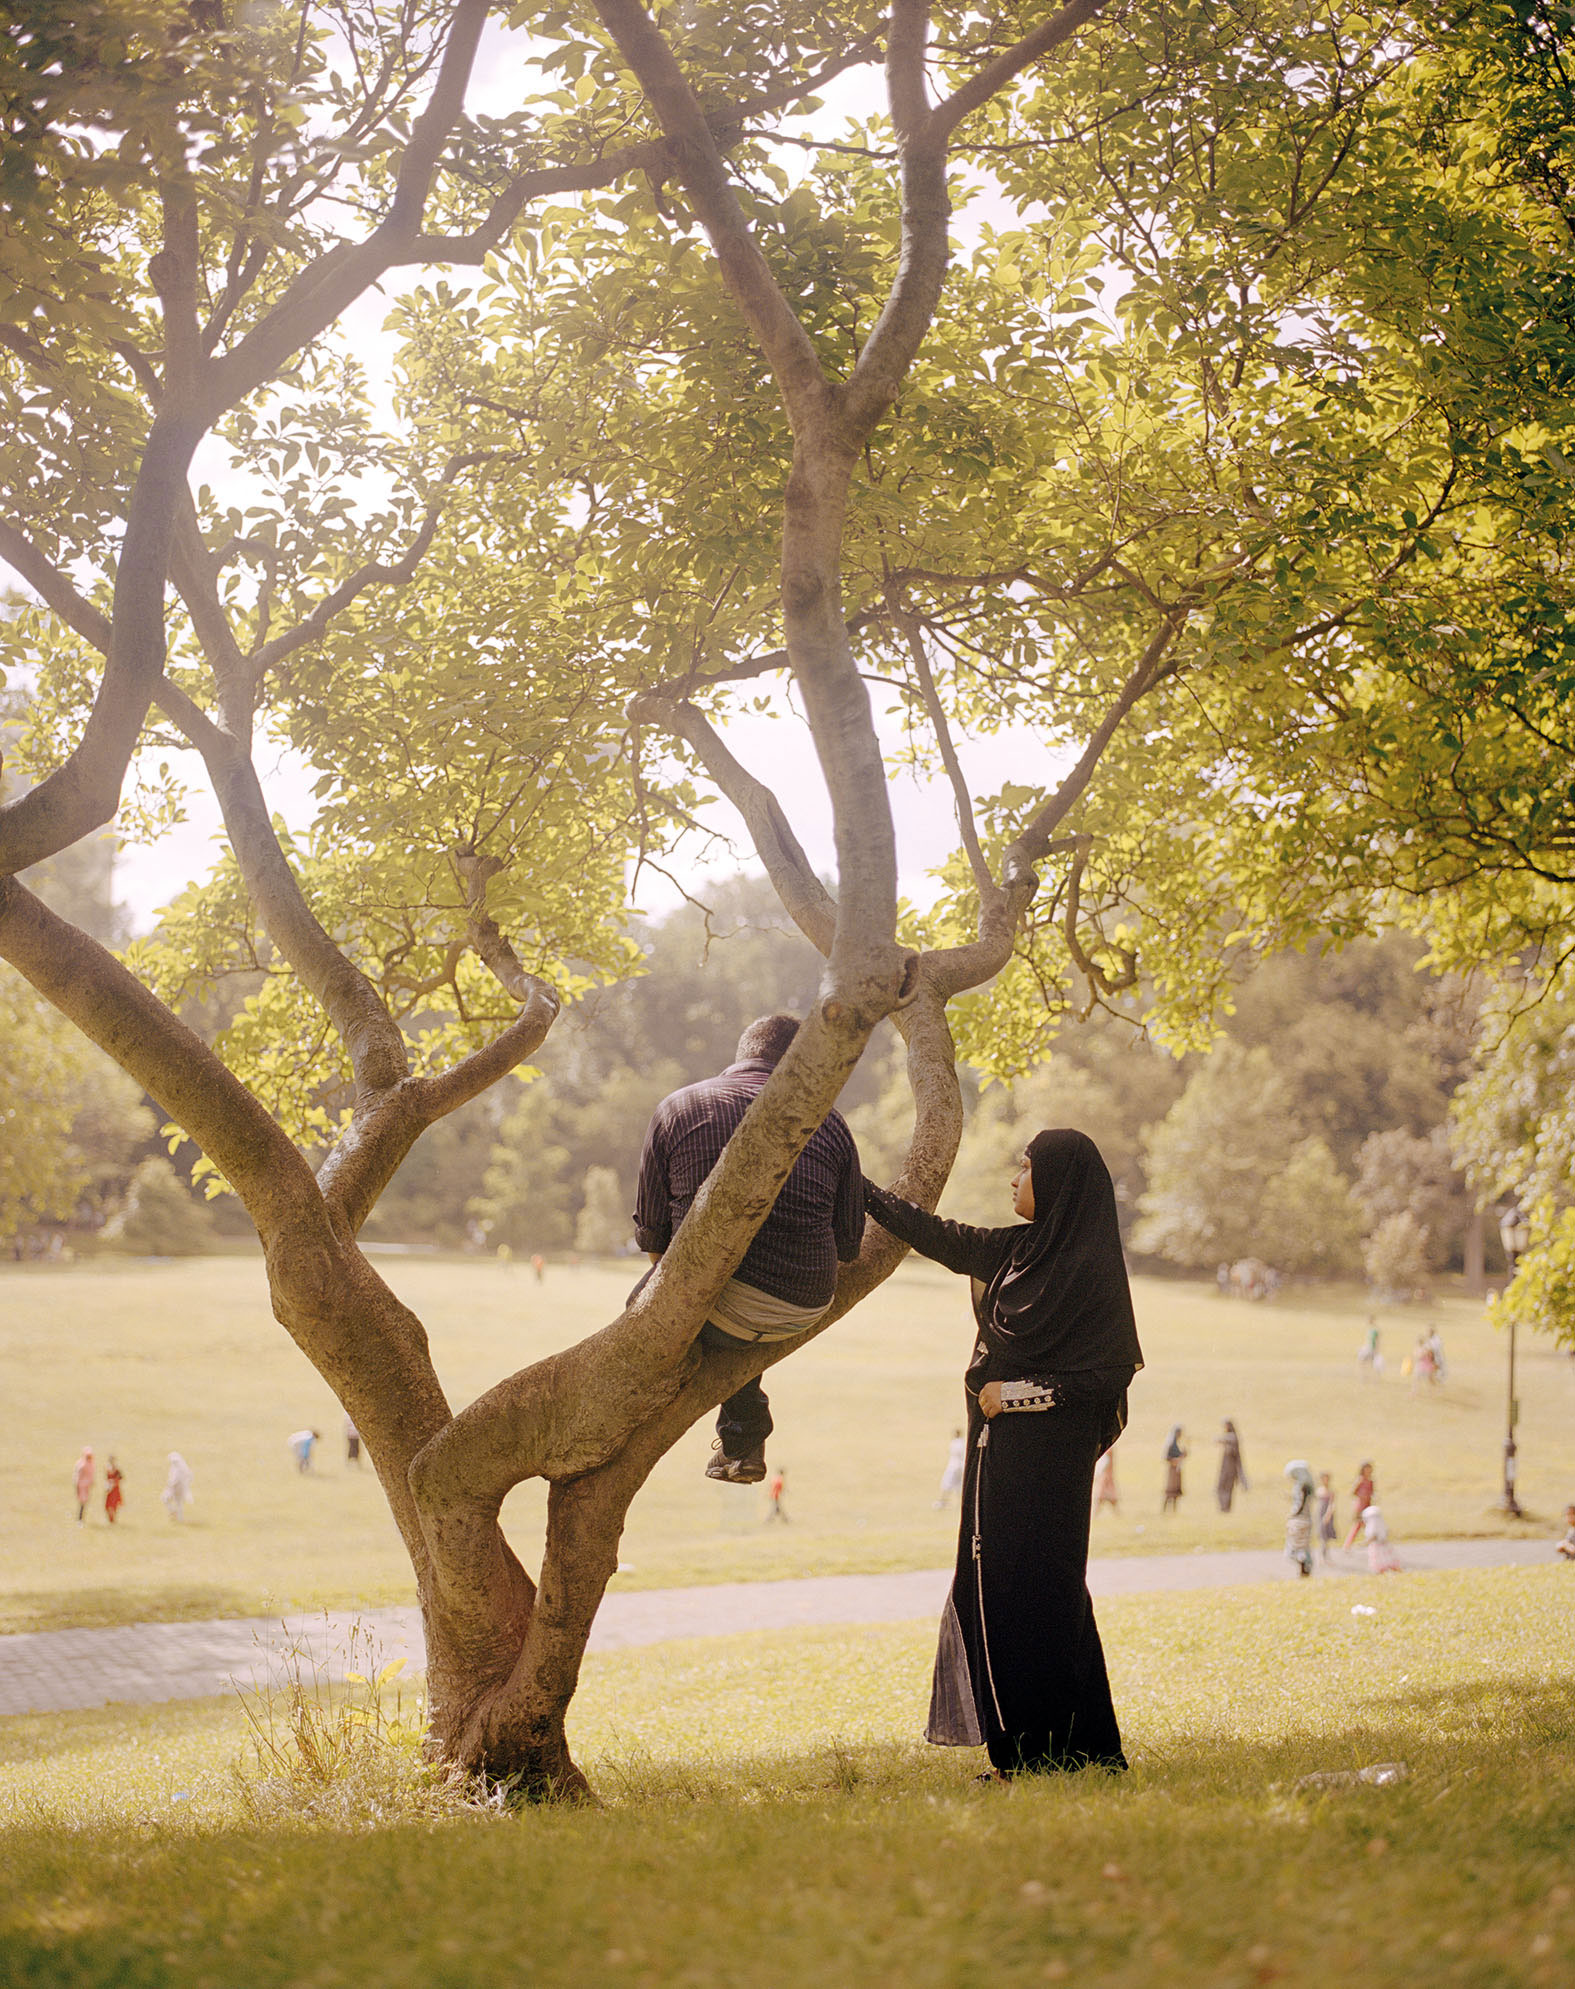 man sitting low in a tree while a woman in a burqa extends her hand to him